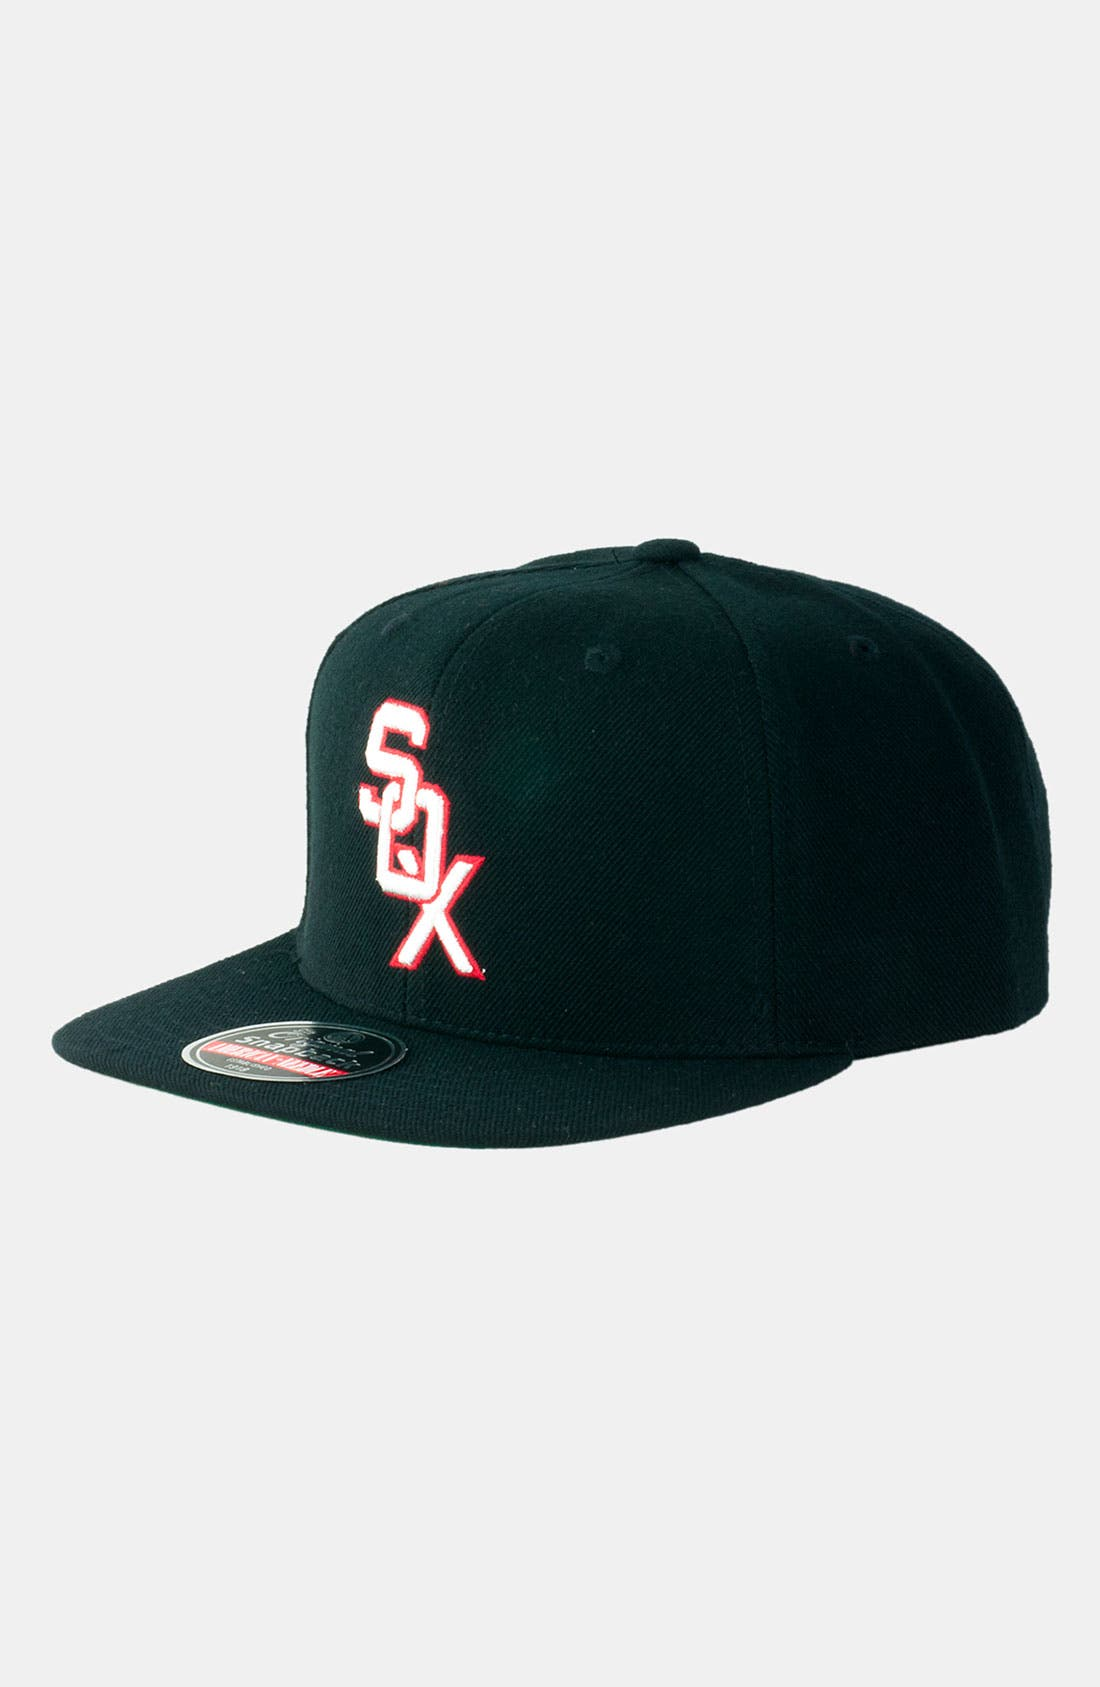 Alternate Image 1 Selected - American Needle 'Chicago White Sox - Cooperstown' Snapback Baseball Cap